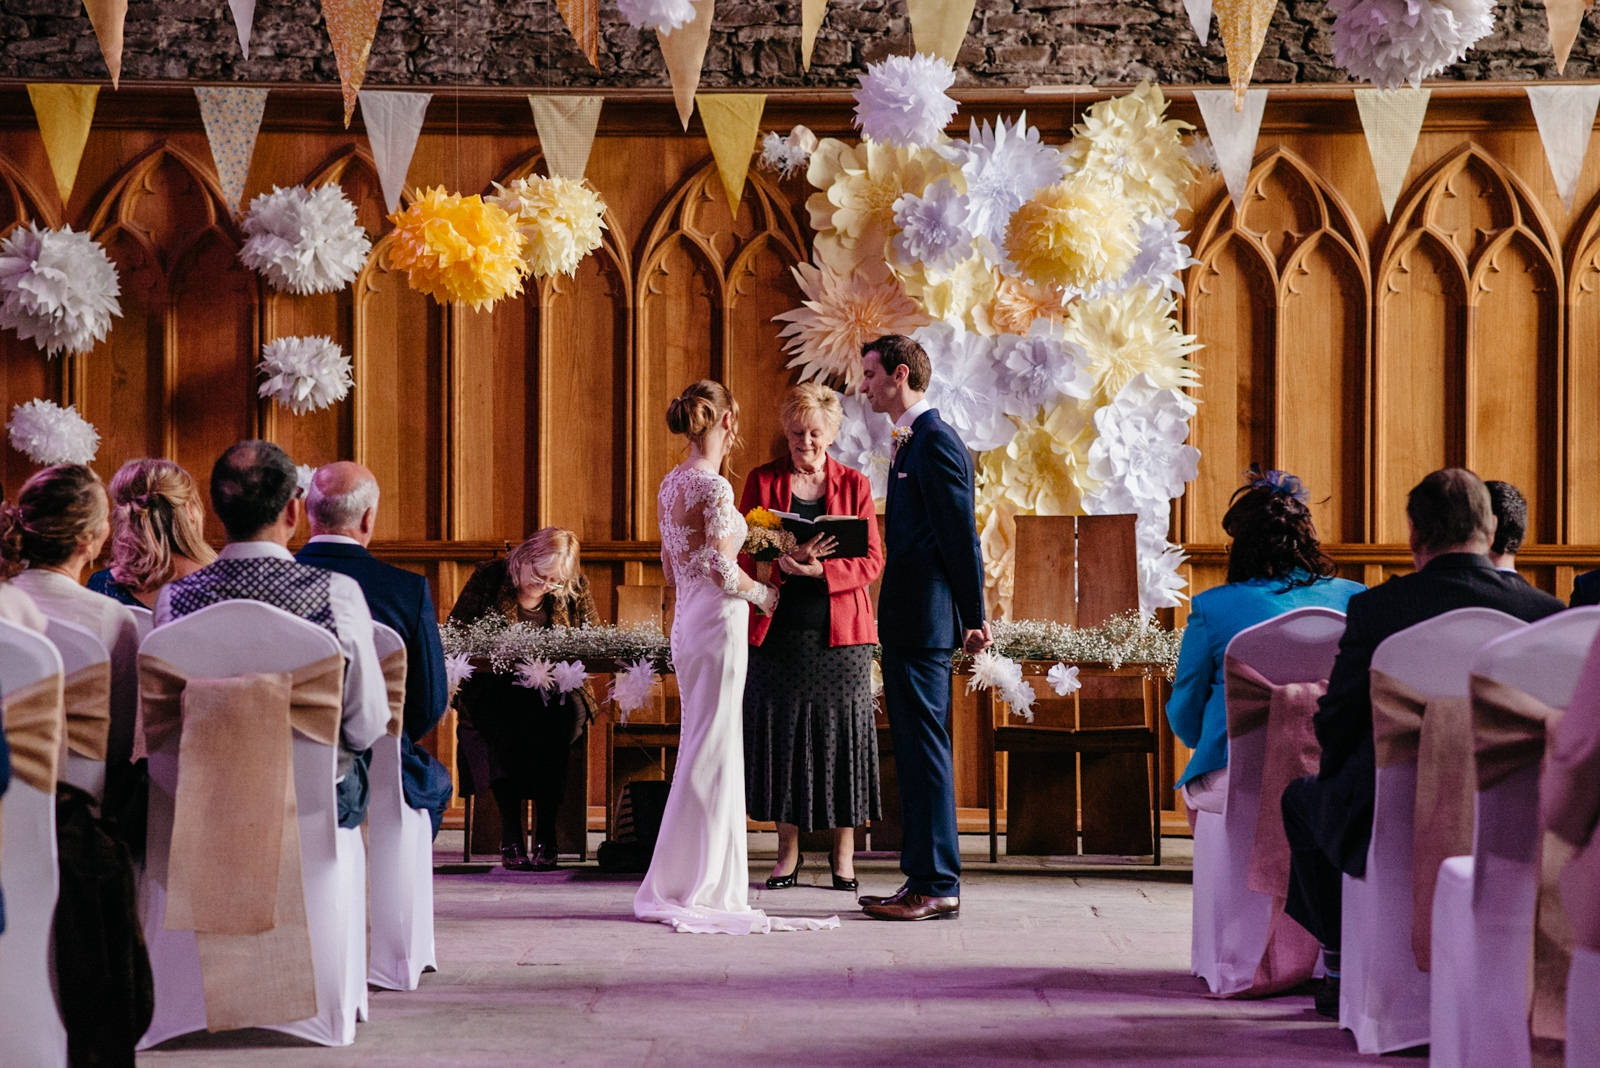 Couple exchanging vows at Caerphilly Castle Wedding